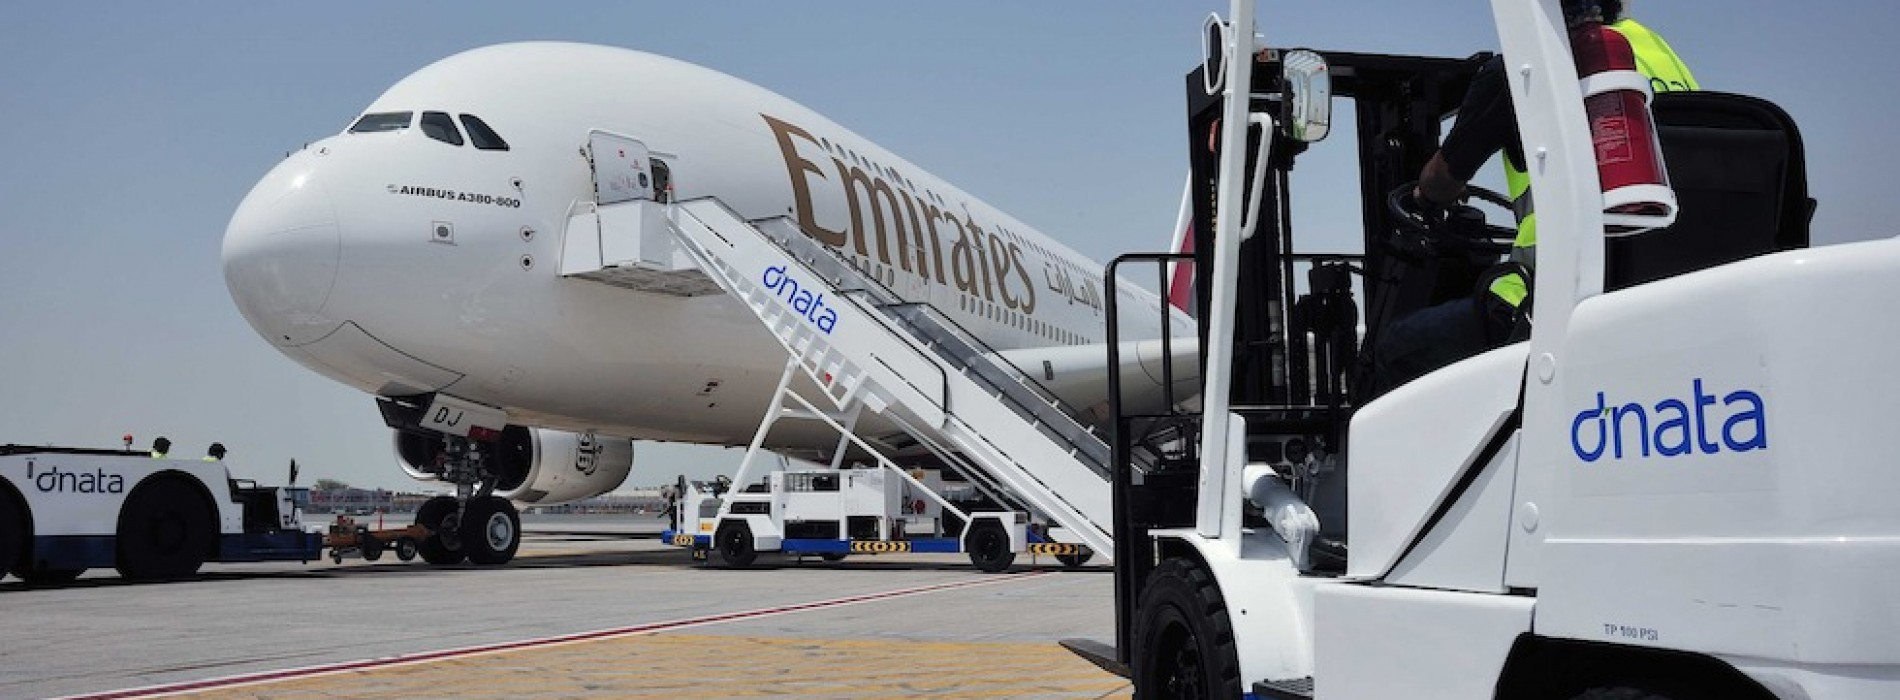 Emirates Group announces half-year performance for 2017-18